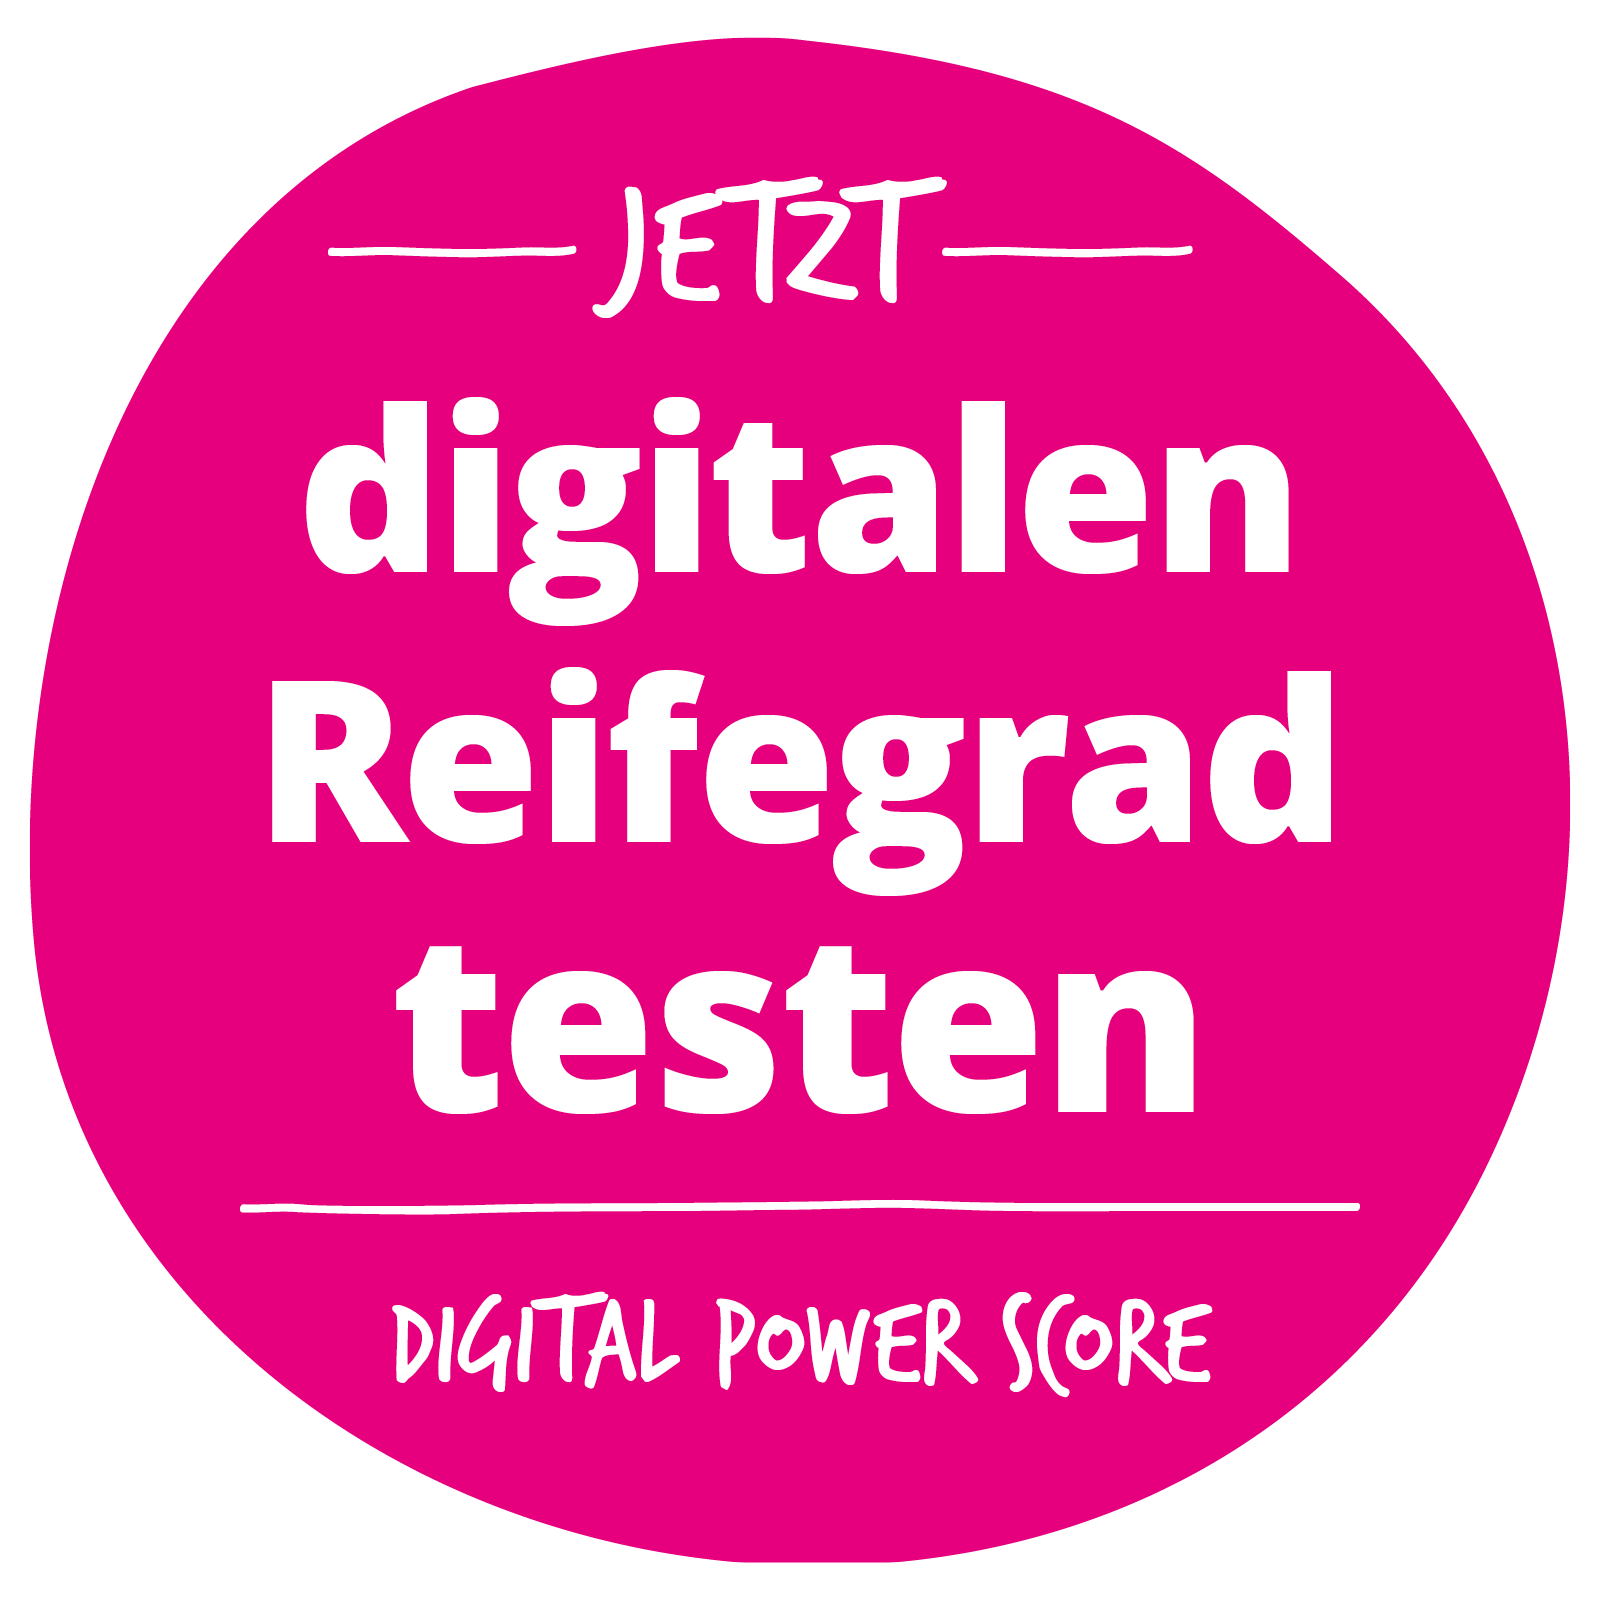 digital-power-score